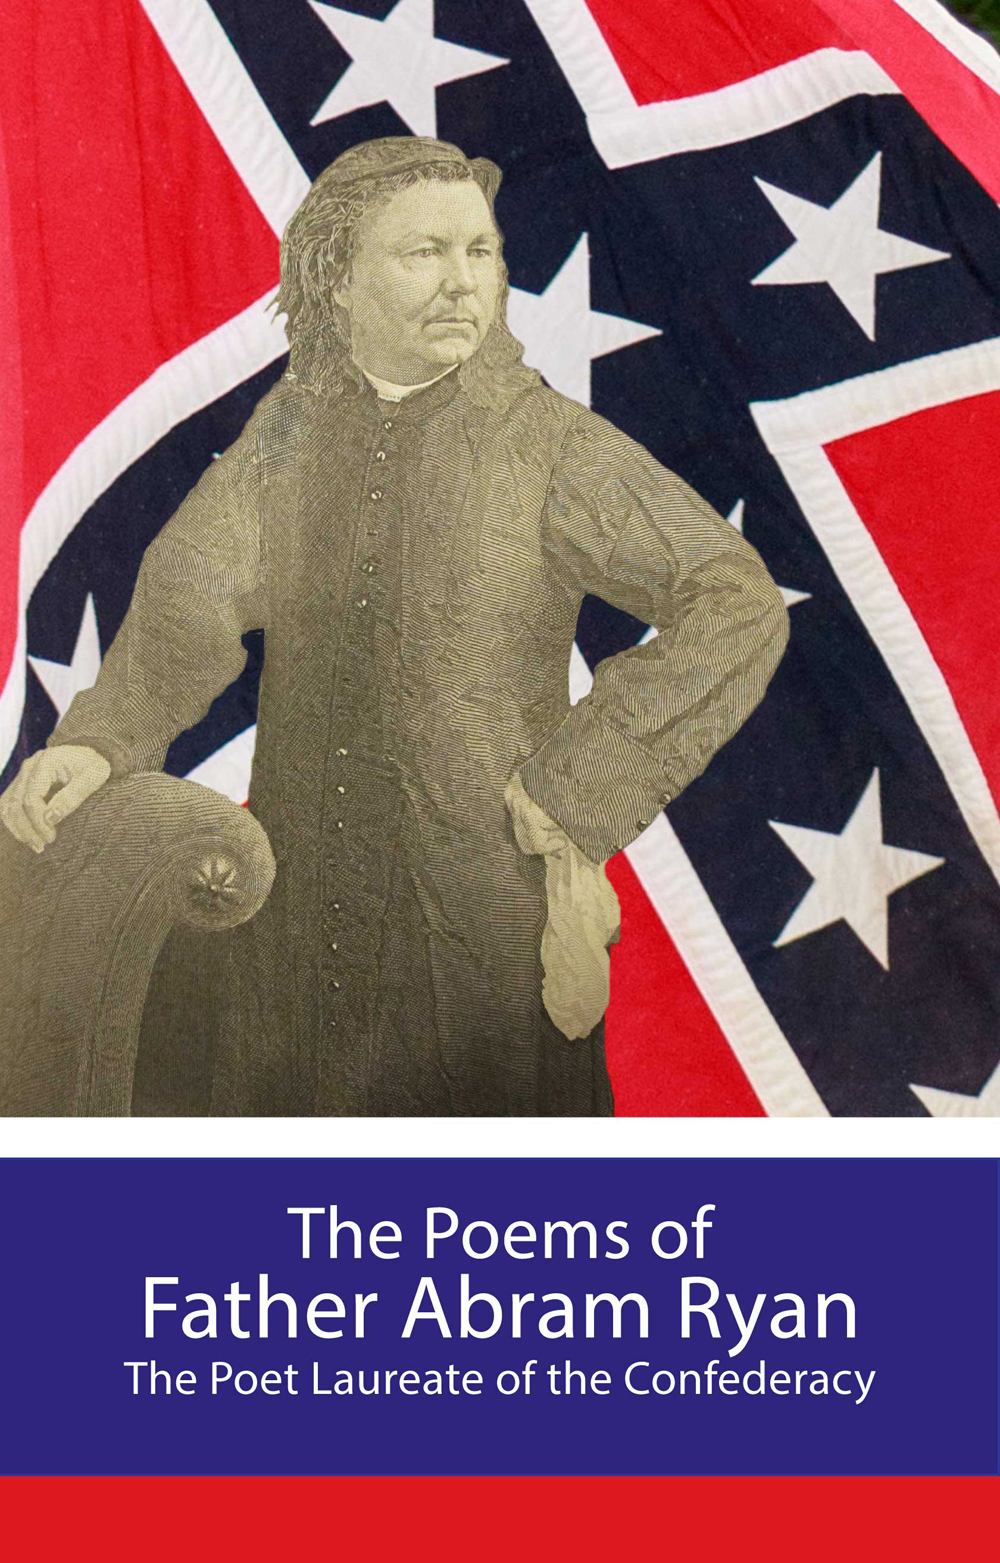 The Poems of Father Abram Ryan - Poet Laureate of the Confederacy